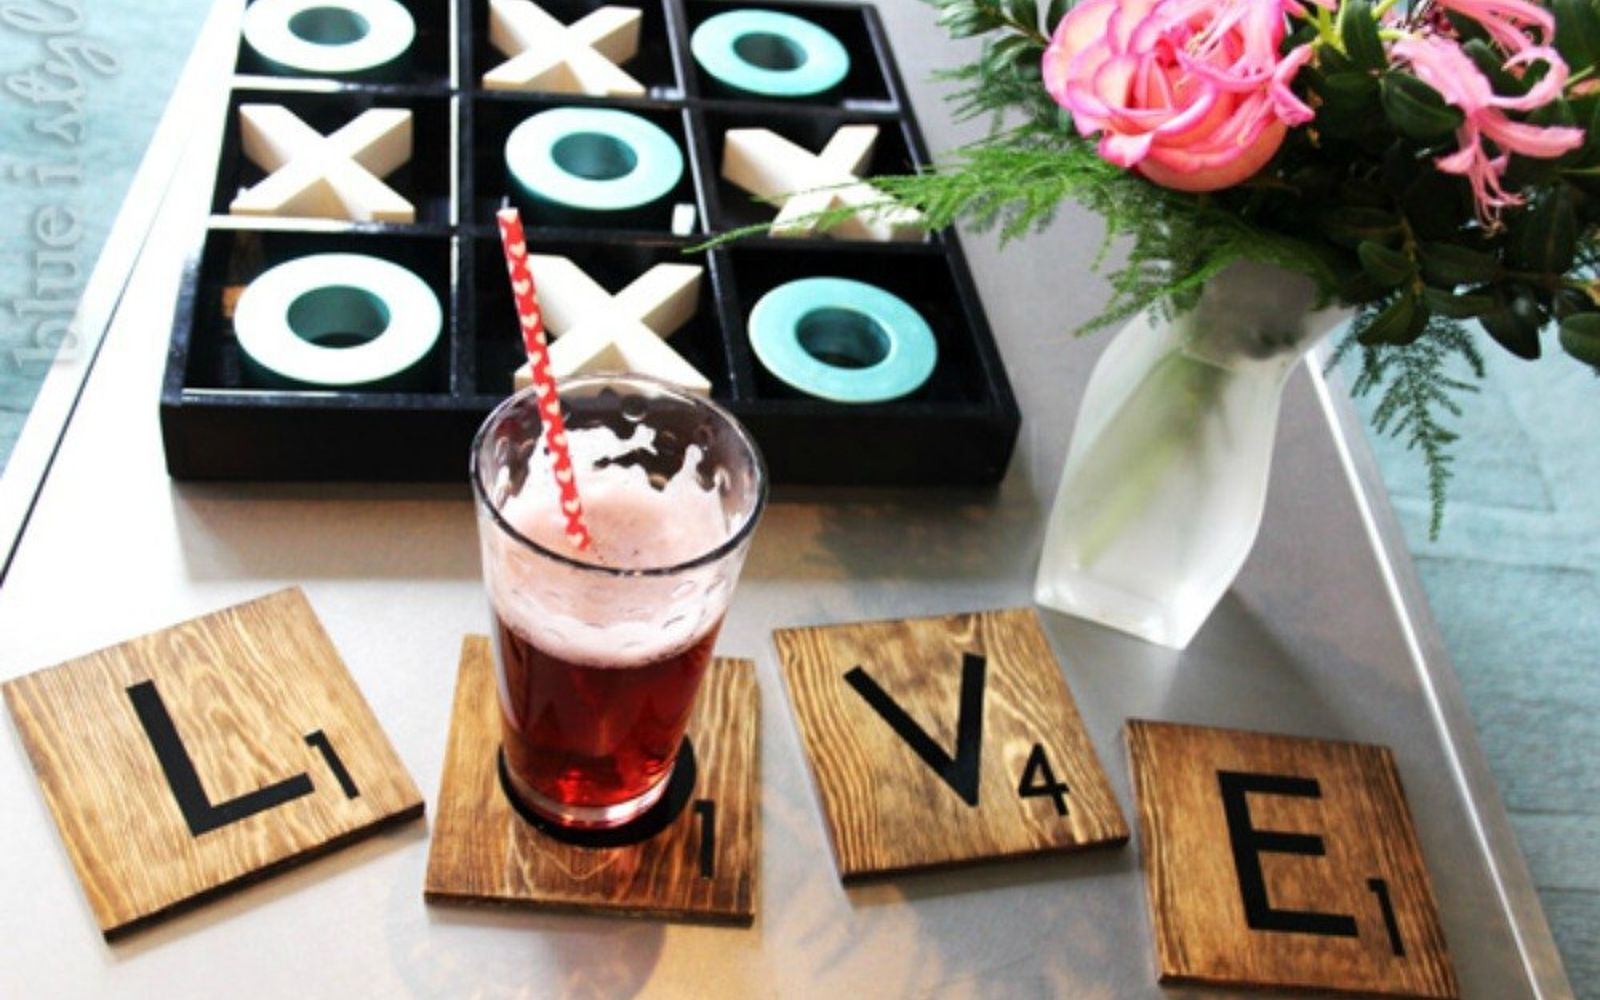 s 20 heartfelt valentine s day gifts for under 20, seasonal holiday decor, valentines day ideas, Stain some wood into fun scrabble coasters